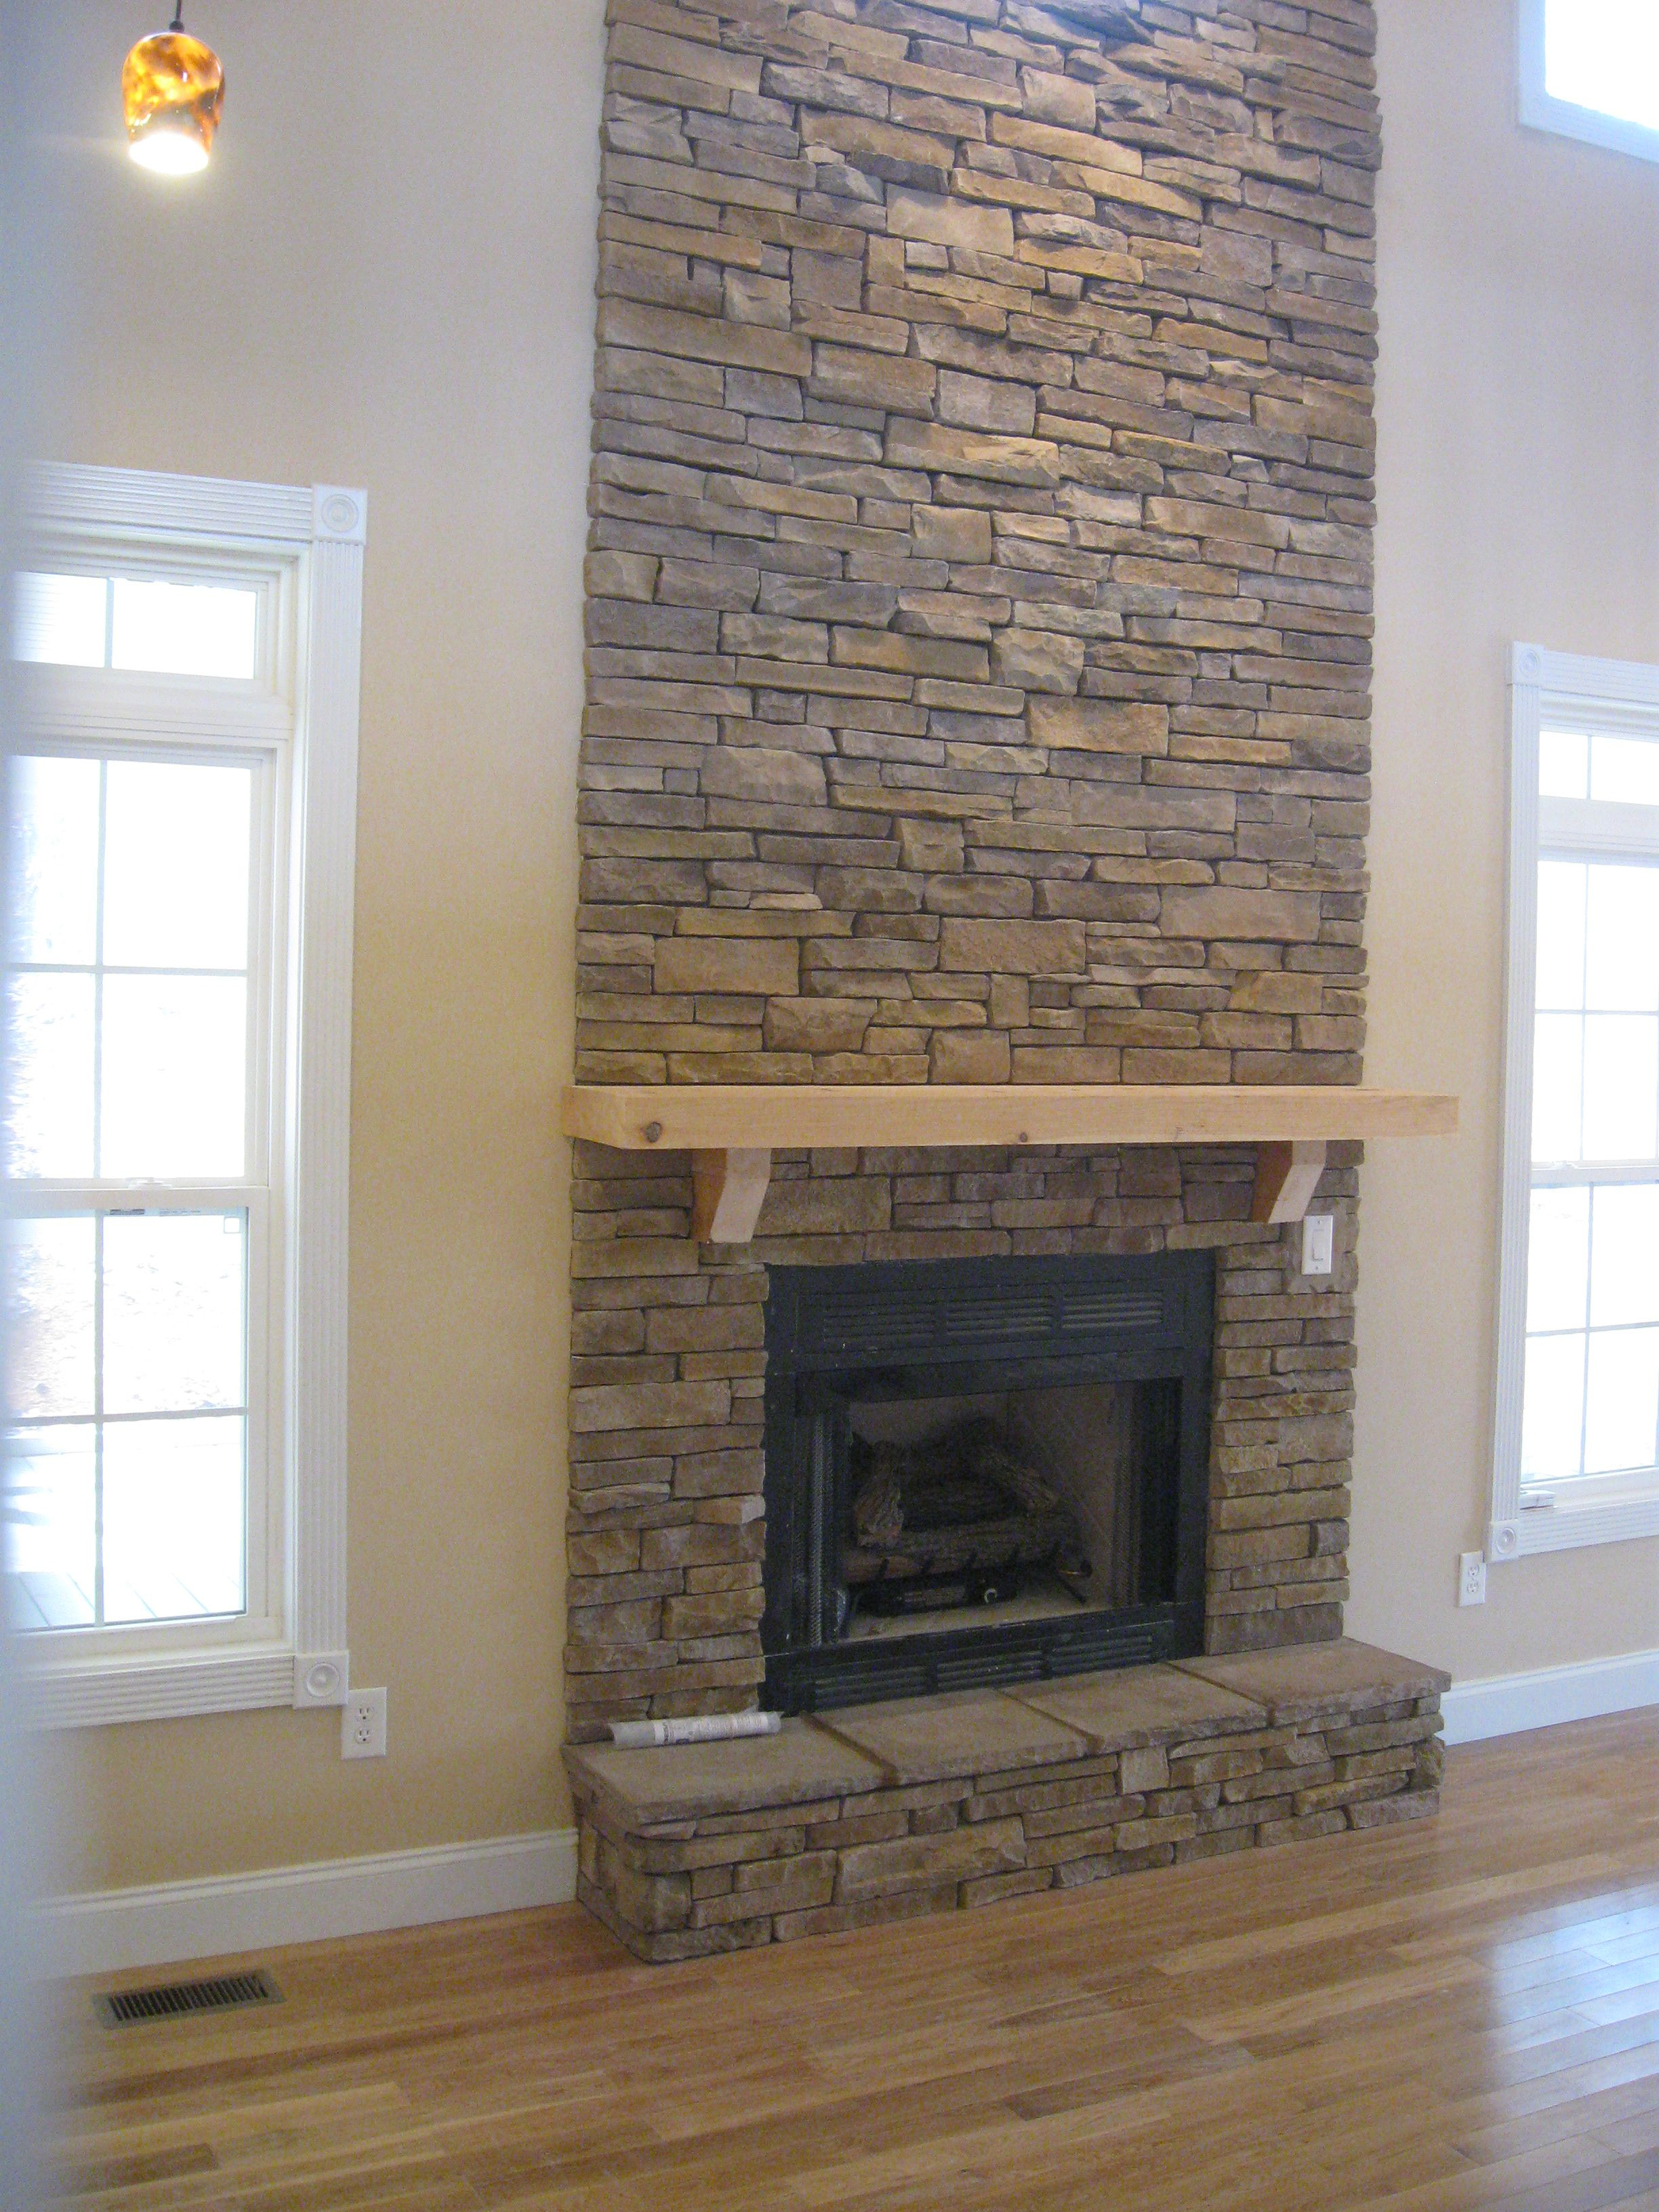 Delicieux Stacked Stone Veneer U2014 Interior And Furnitures : The Best Stacked .